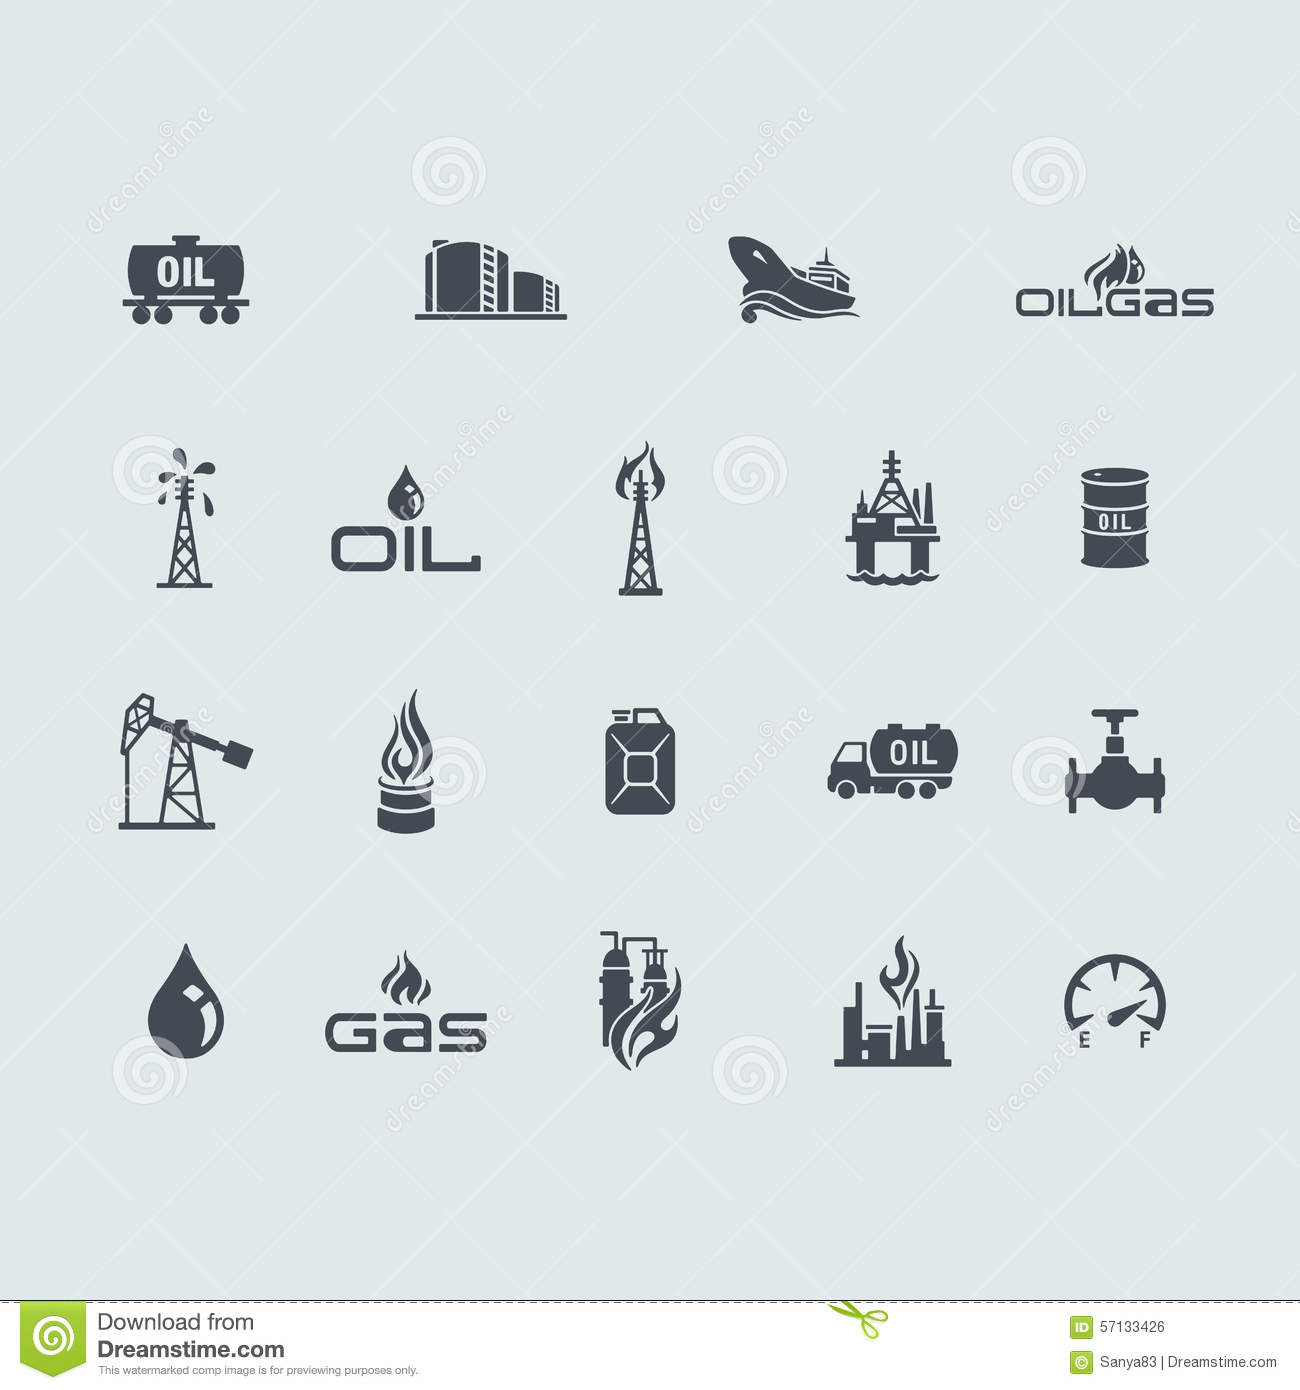 oil and gas icon set vector illustration